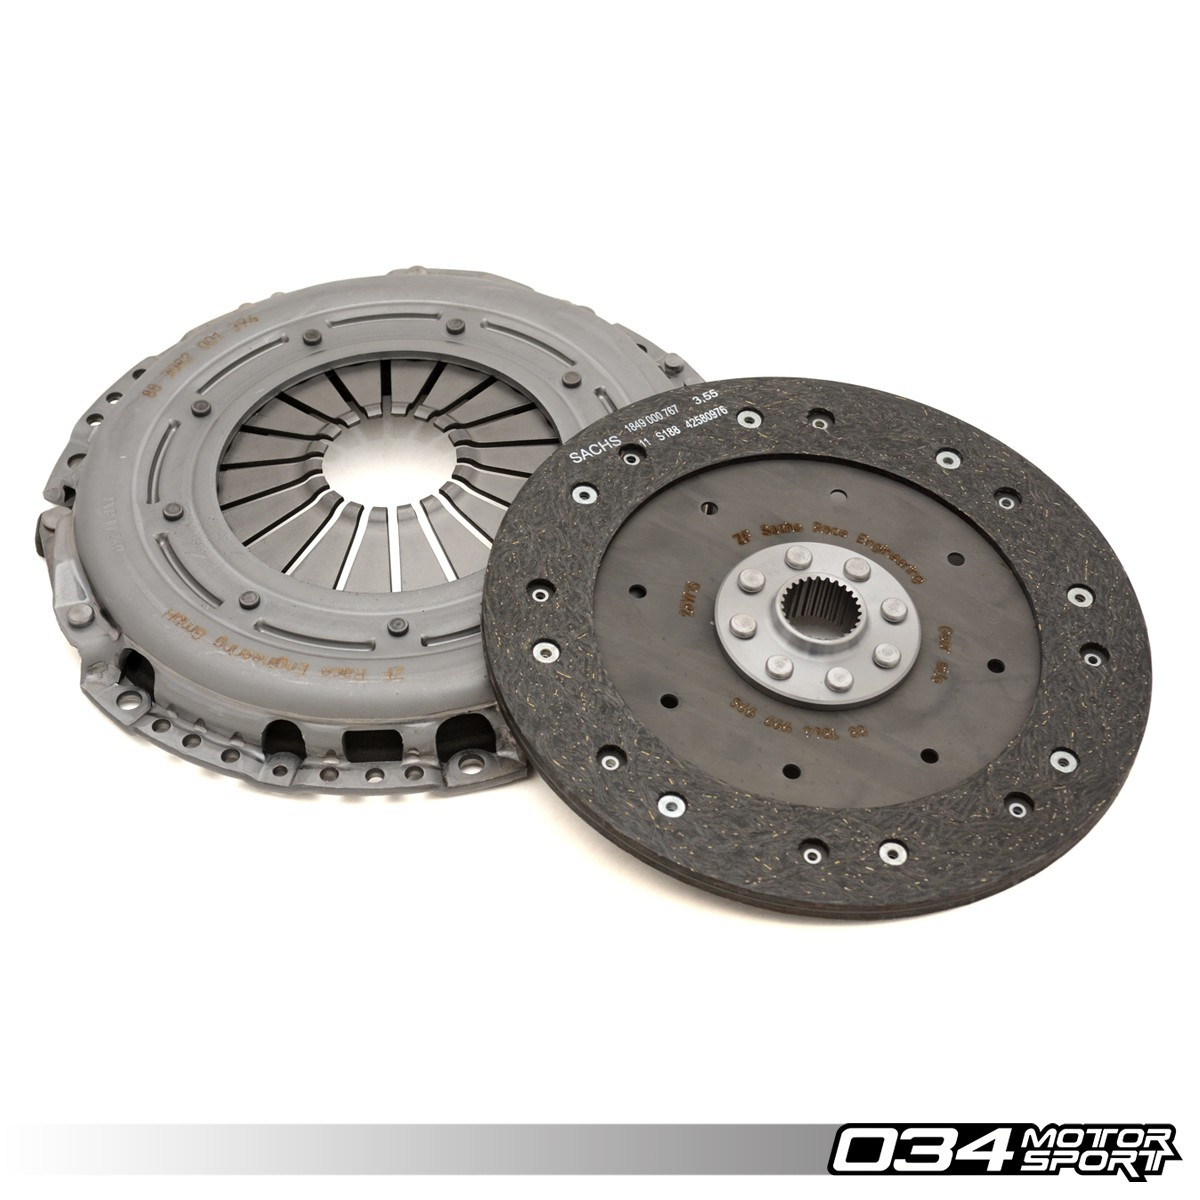 Sachs Performance Clutch Kit for B5 Audi S4 2.7T Quattro | SPC-001423.001707